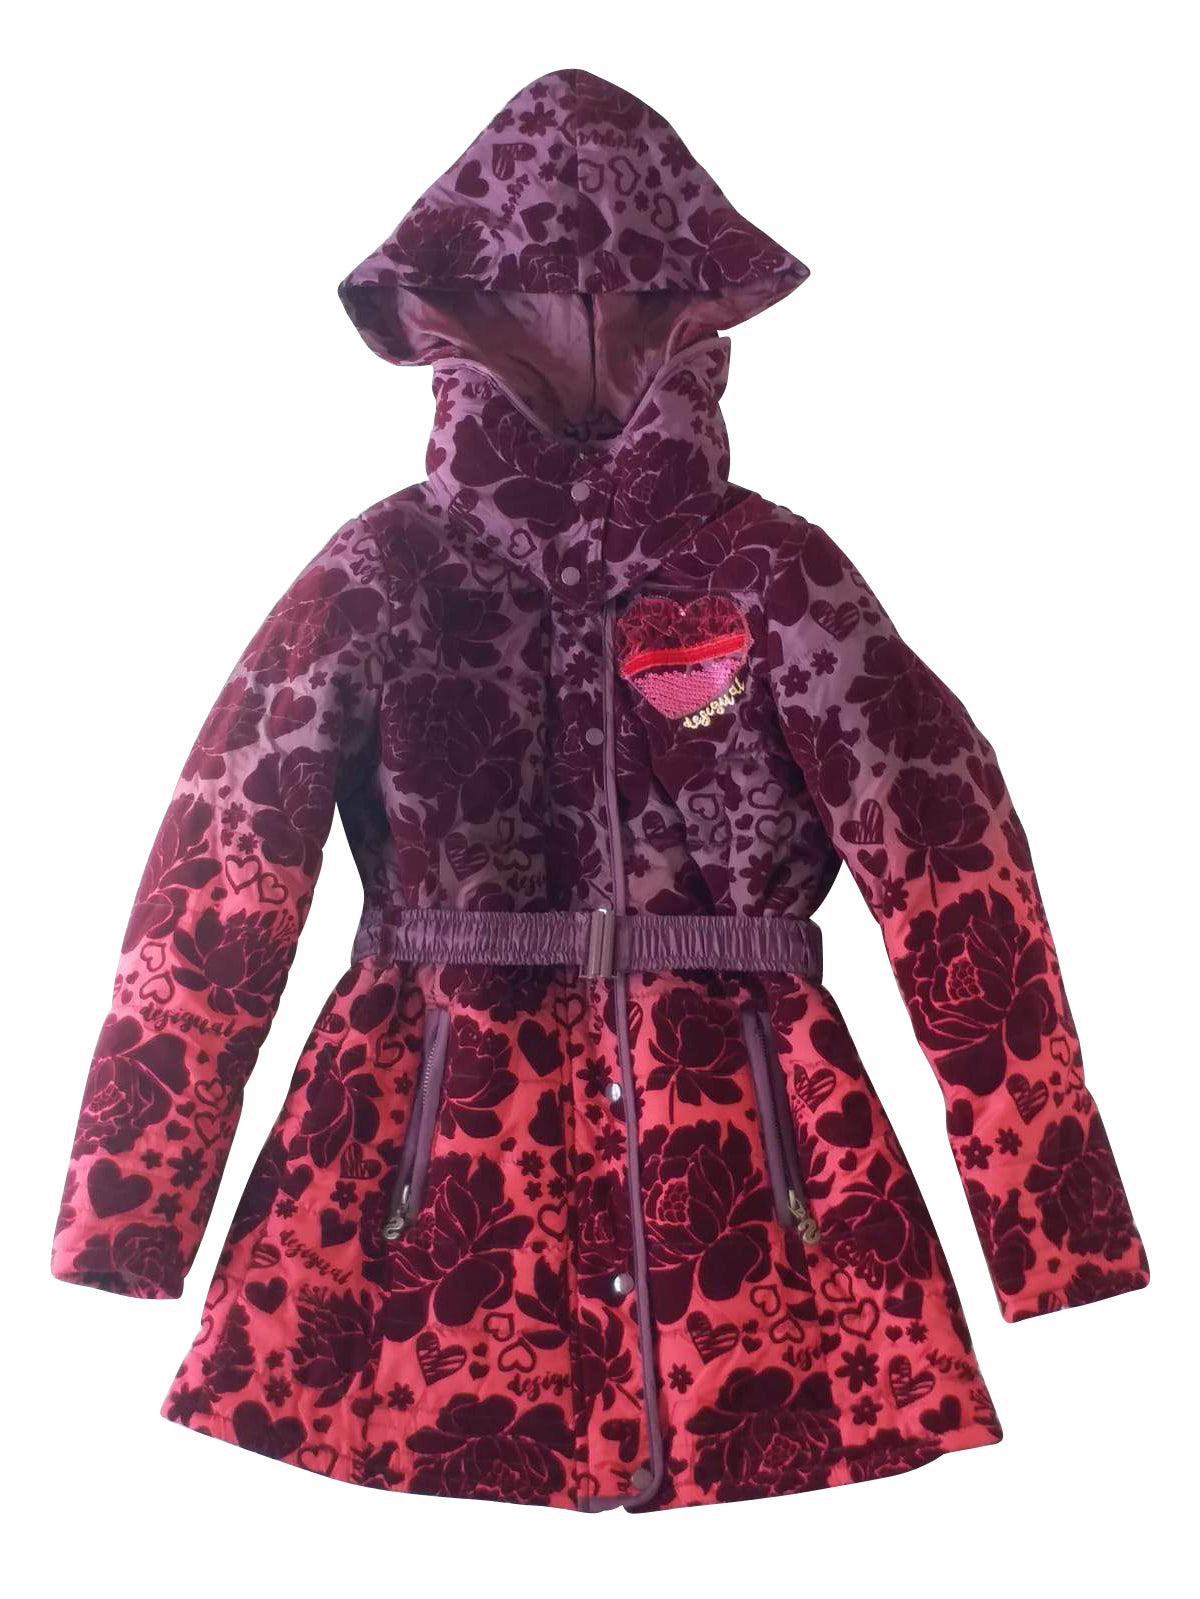 Girls Fashion Jacket With Hood - 8pcs/pack ($10.65 each)